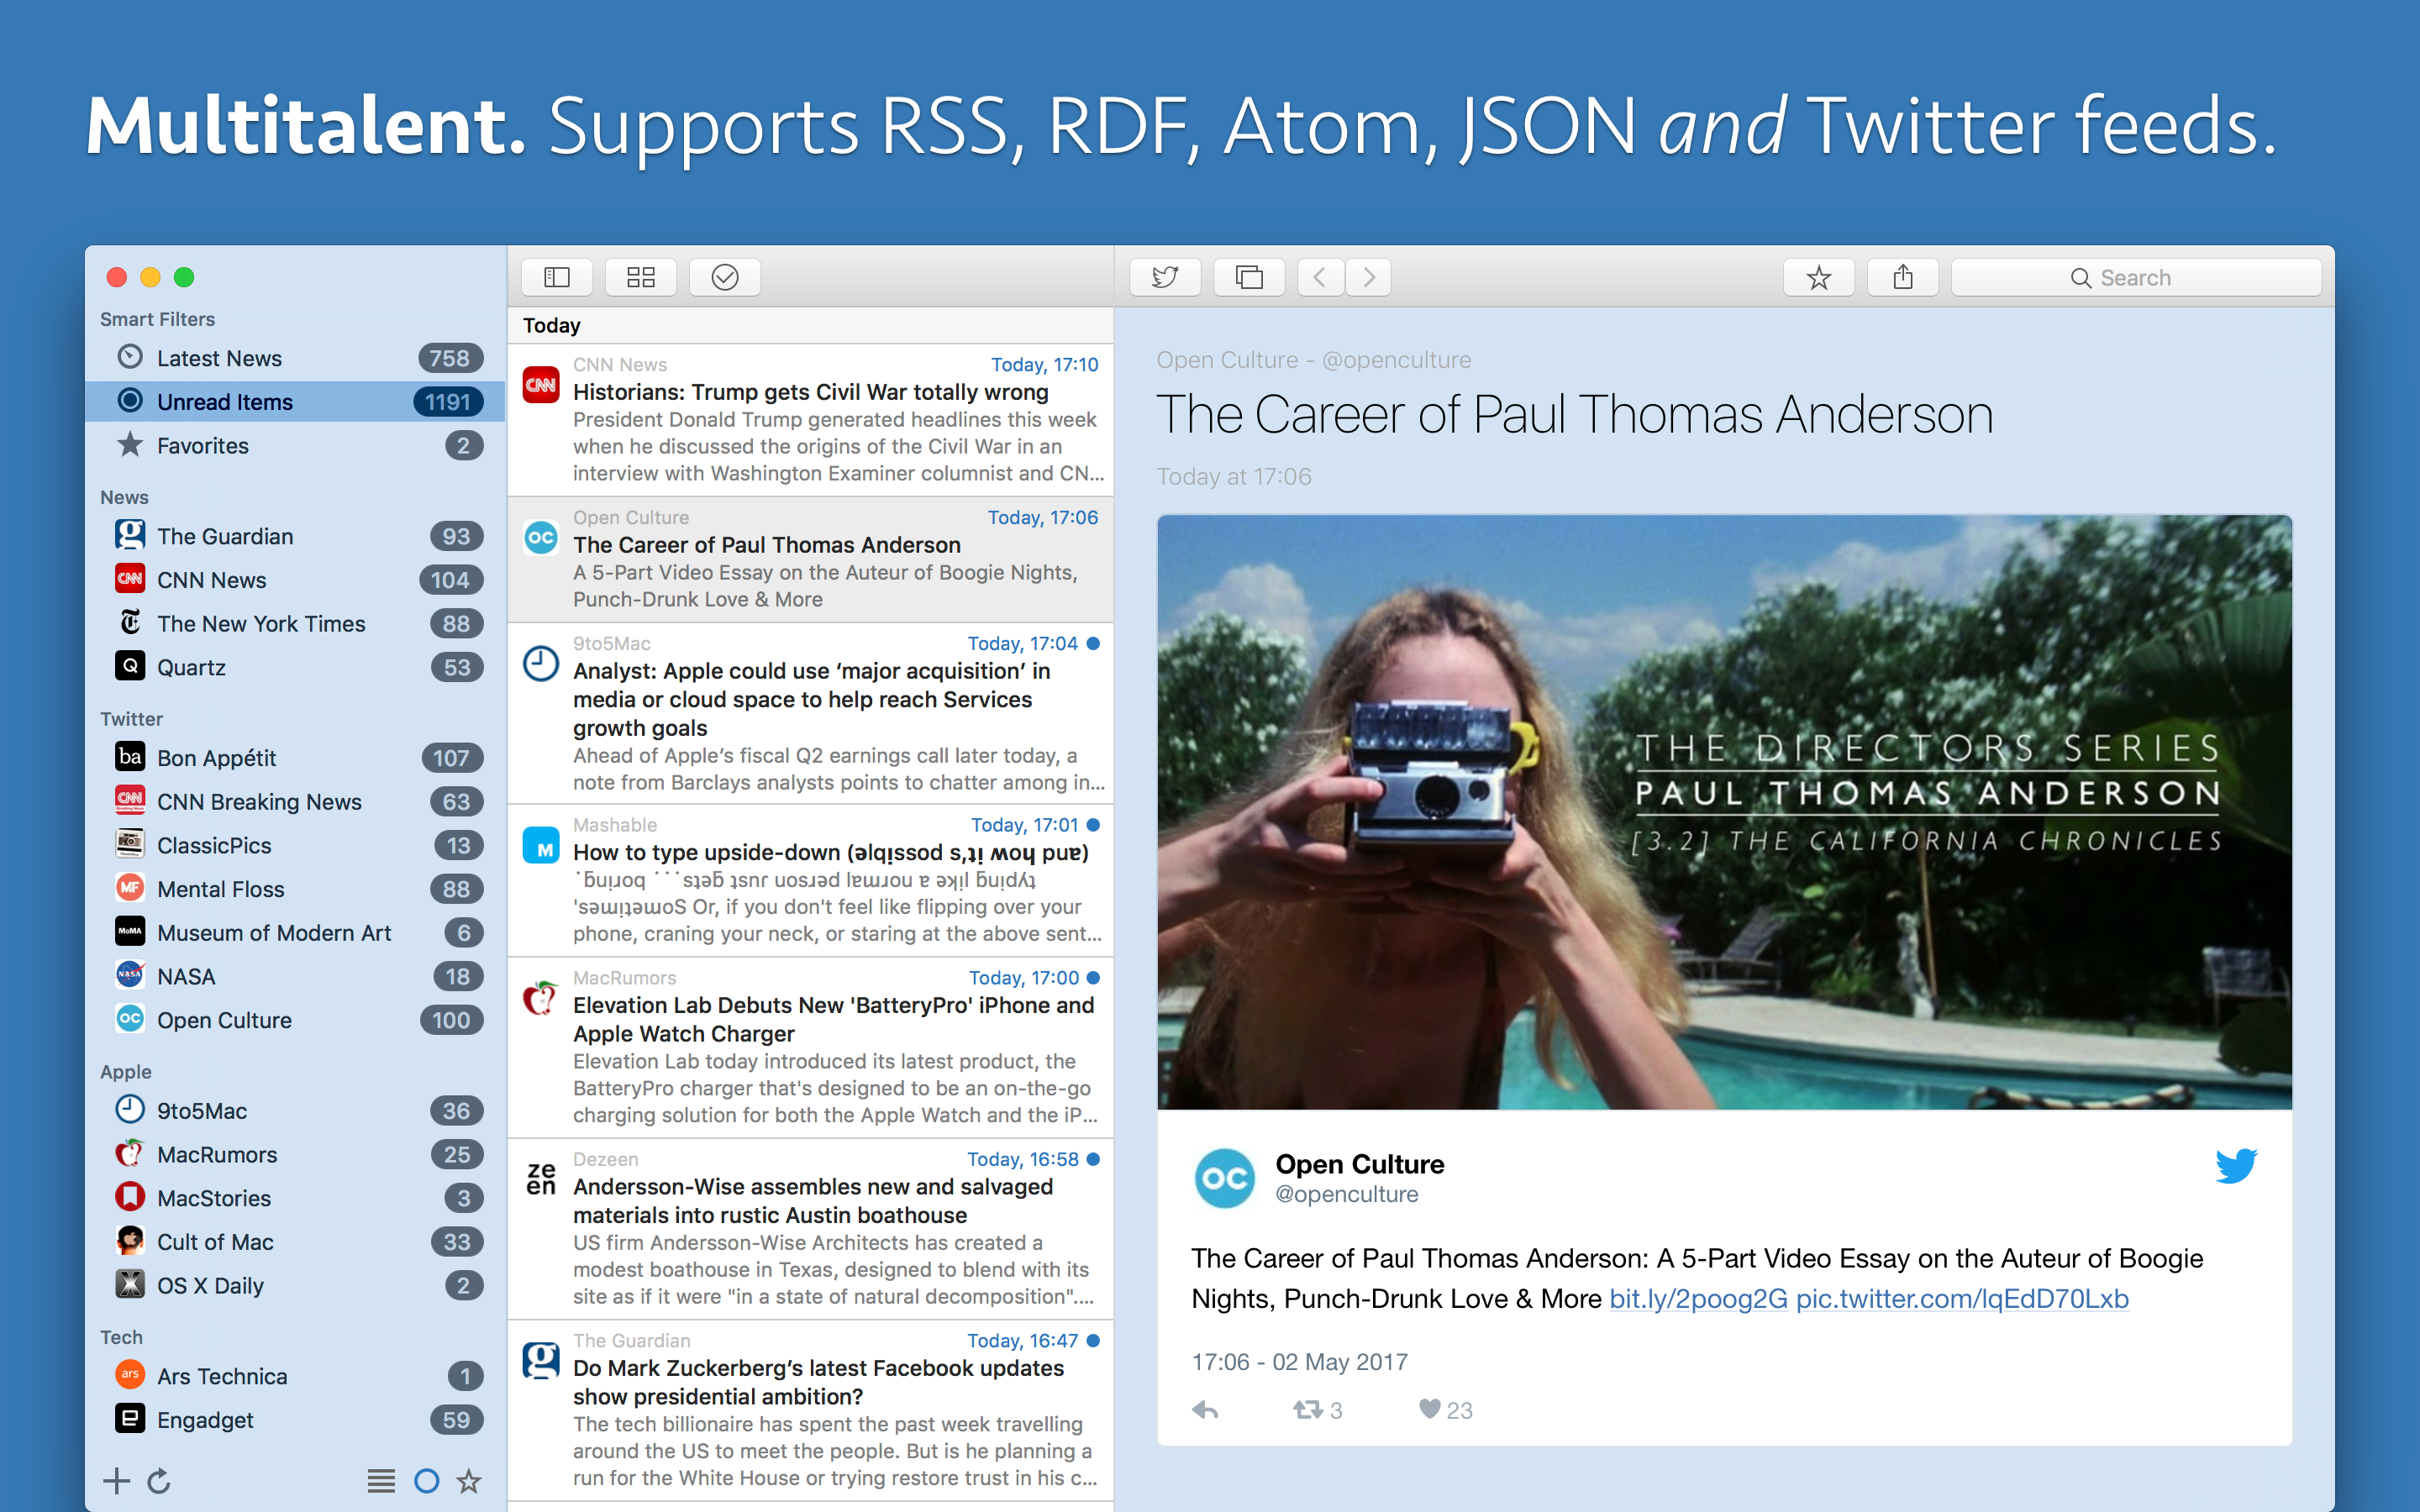 Supports RSS, RDF, Atom, JSON and Twitter feeds.